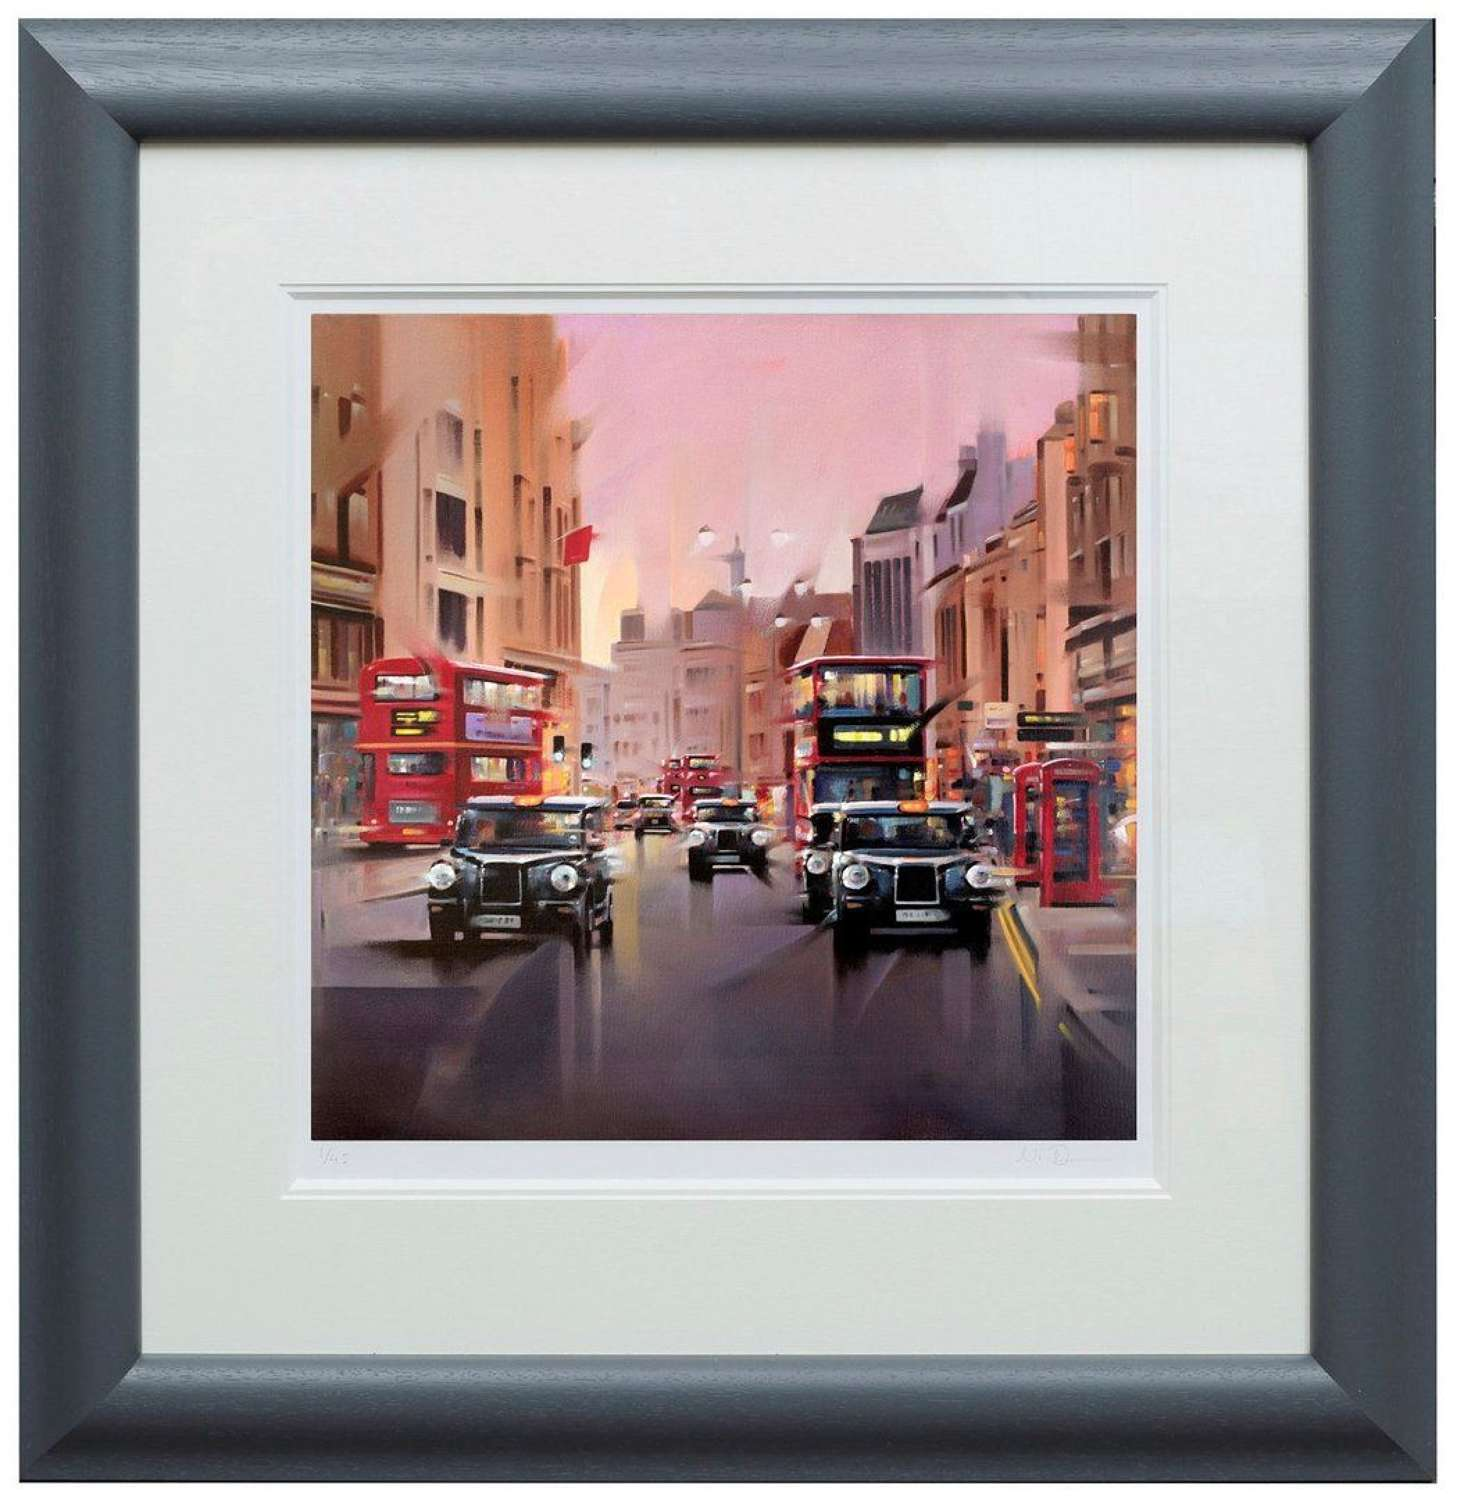 City Streets by Neil Dawson Framed Paper Art Print